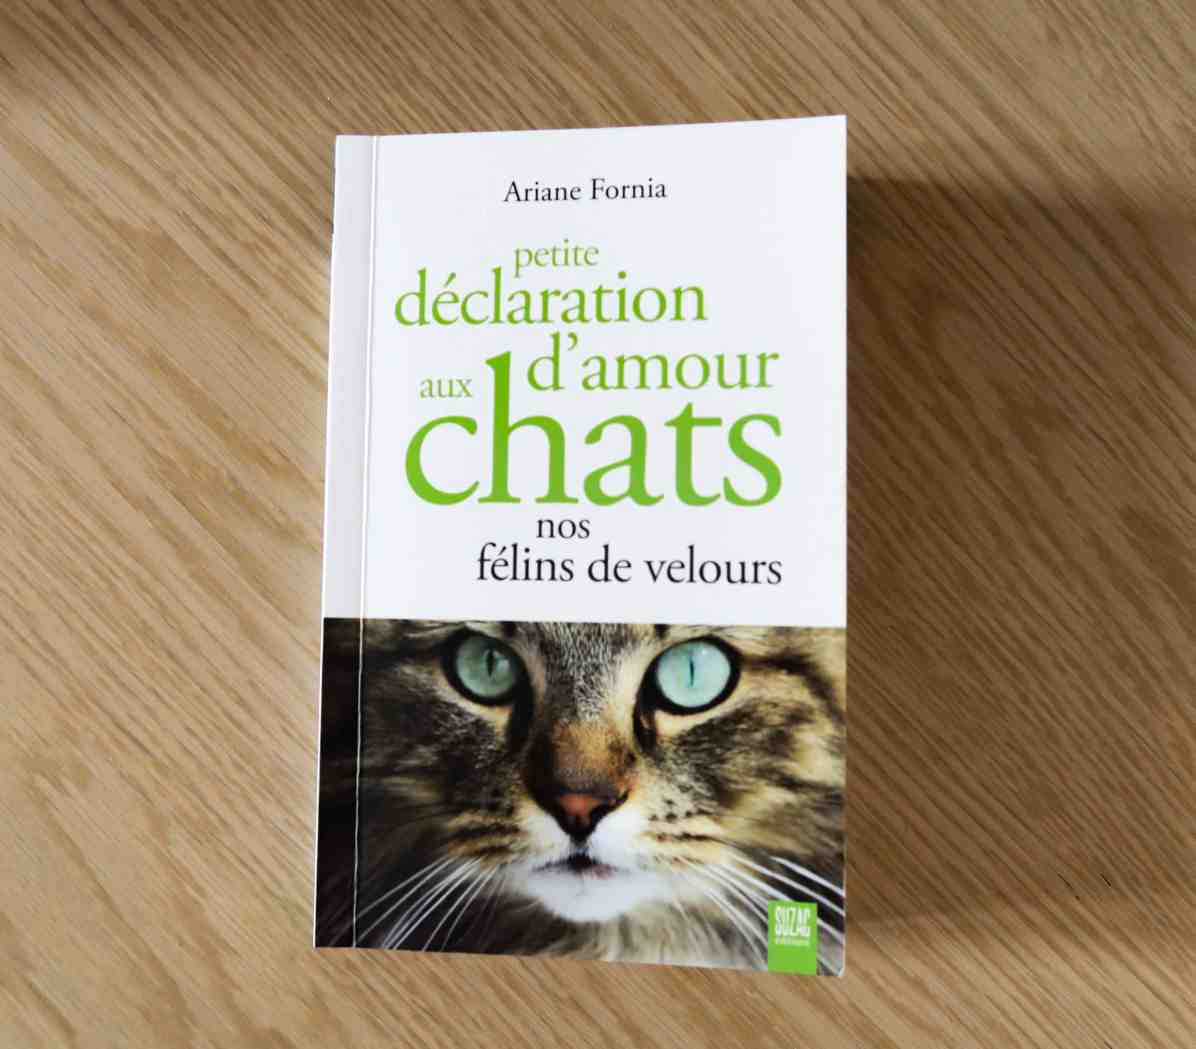 Déclaration d'amour aux chats - Ariane Fornia